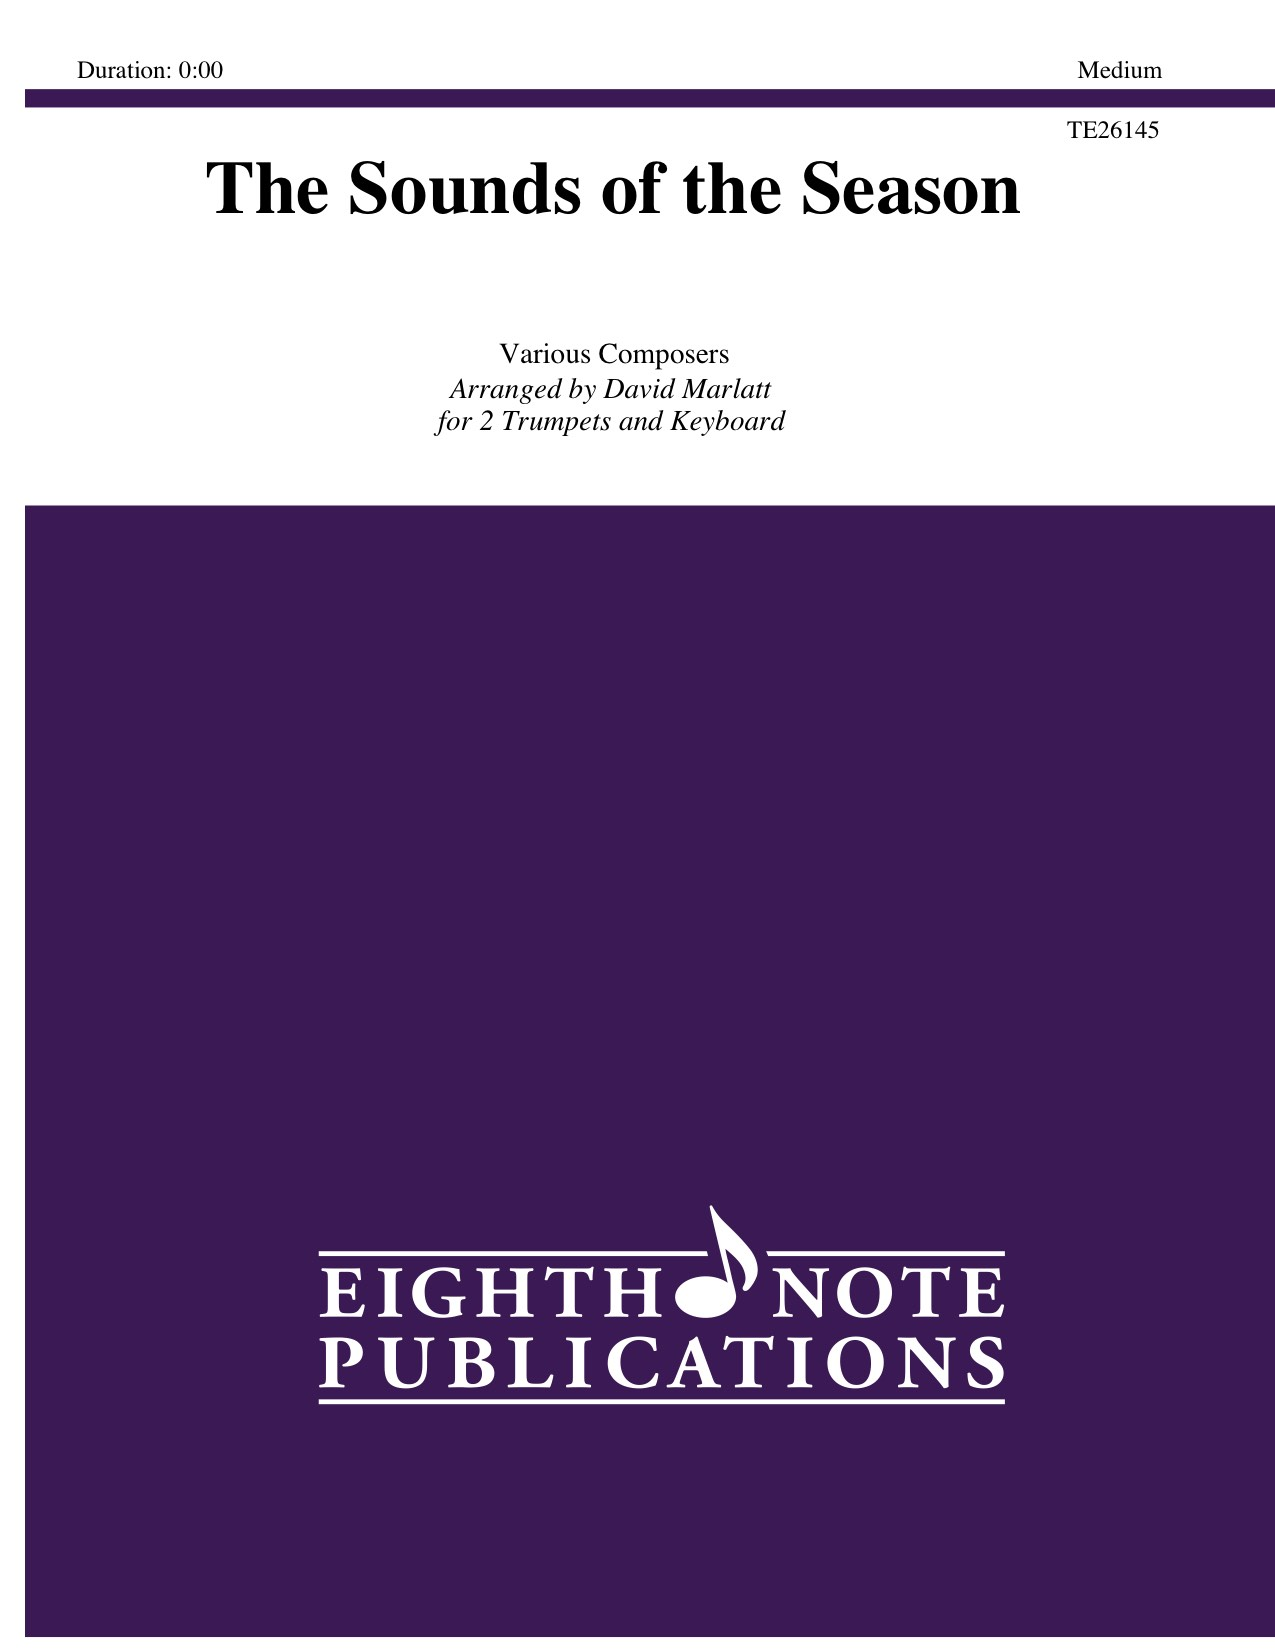 Sounds of the Season, The -  Various